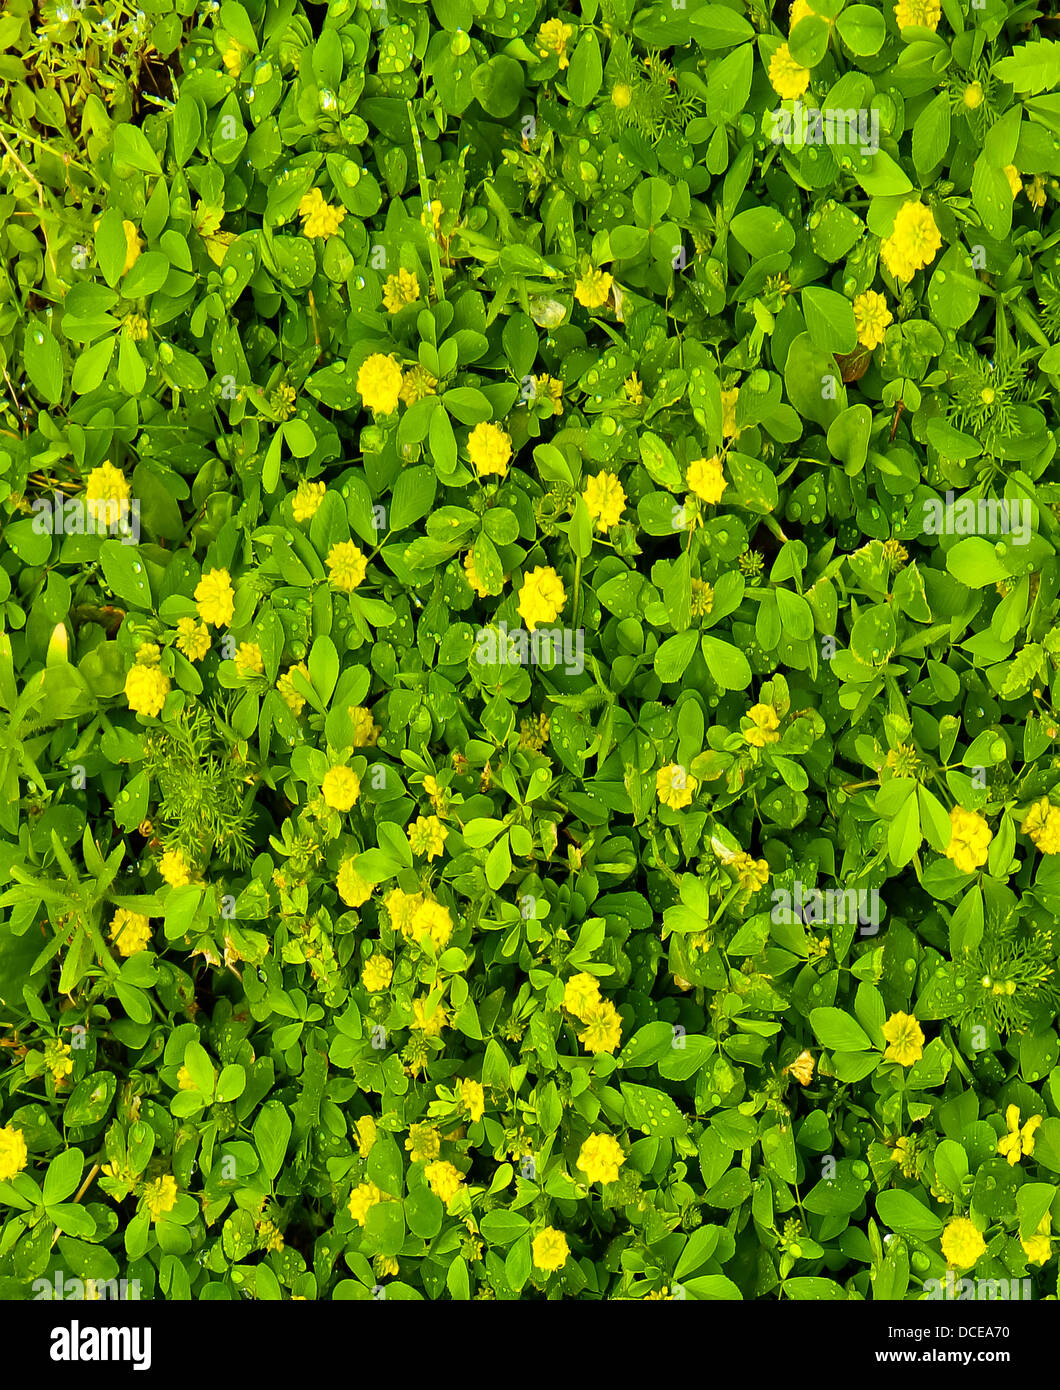 Tiny Yellow Flowers On Green Leaf Background With Water Droplets